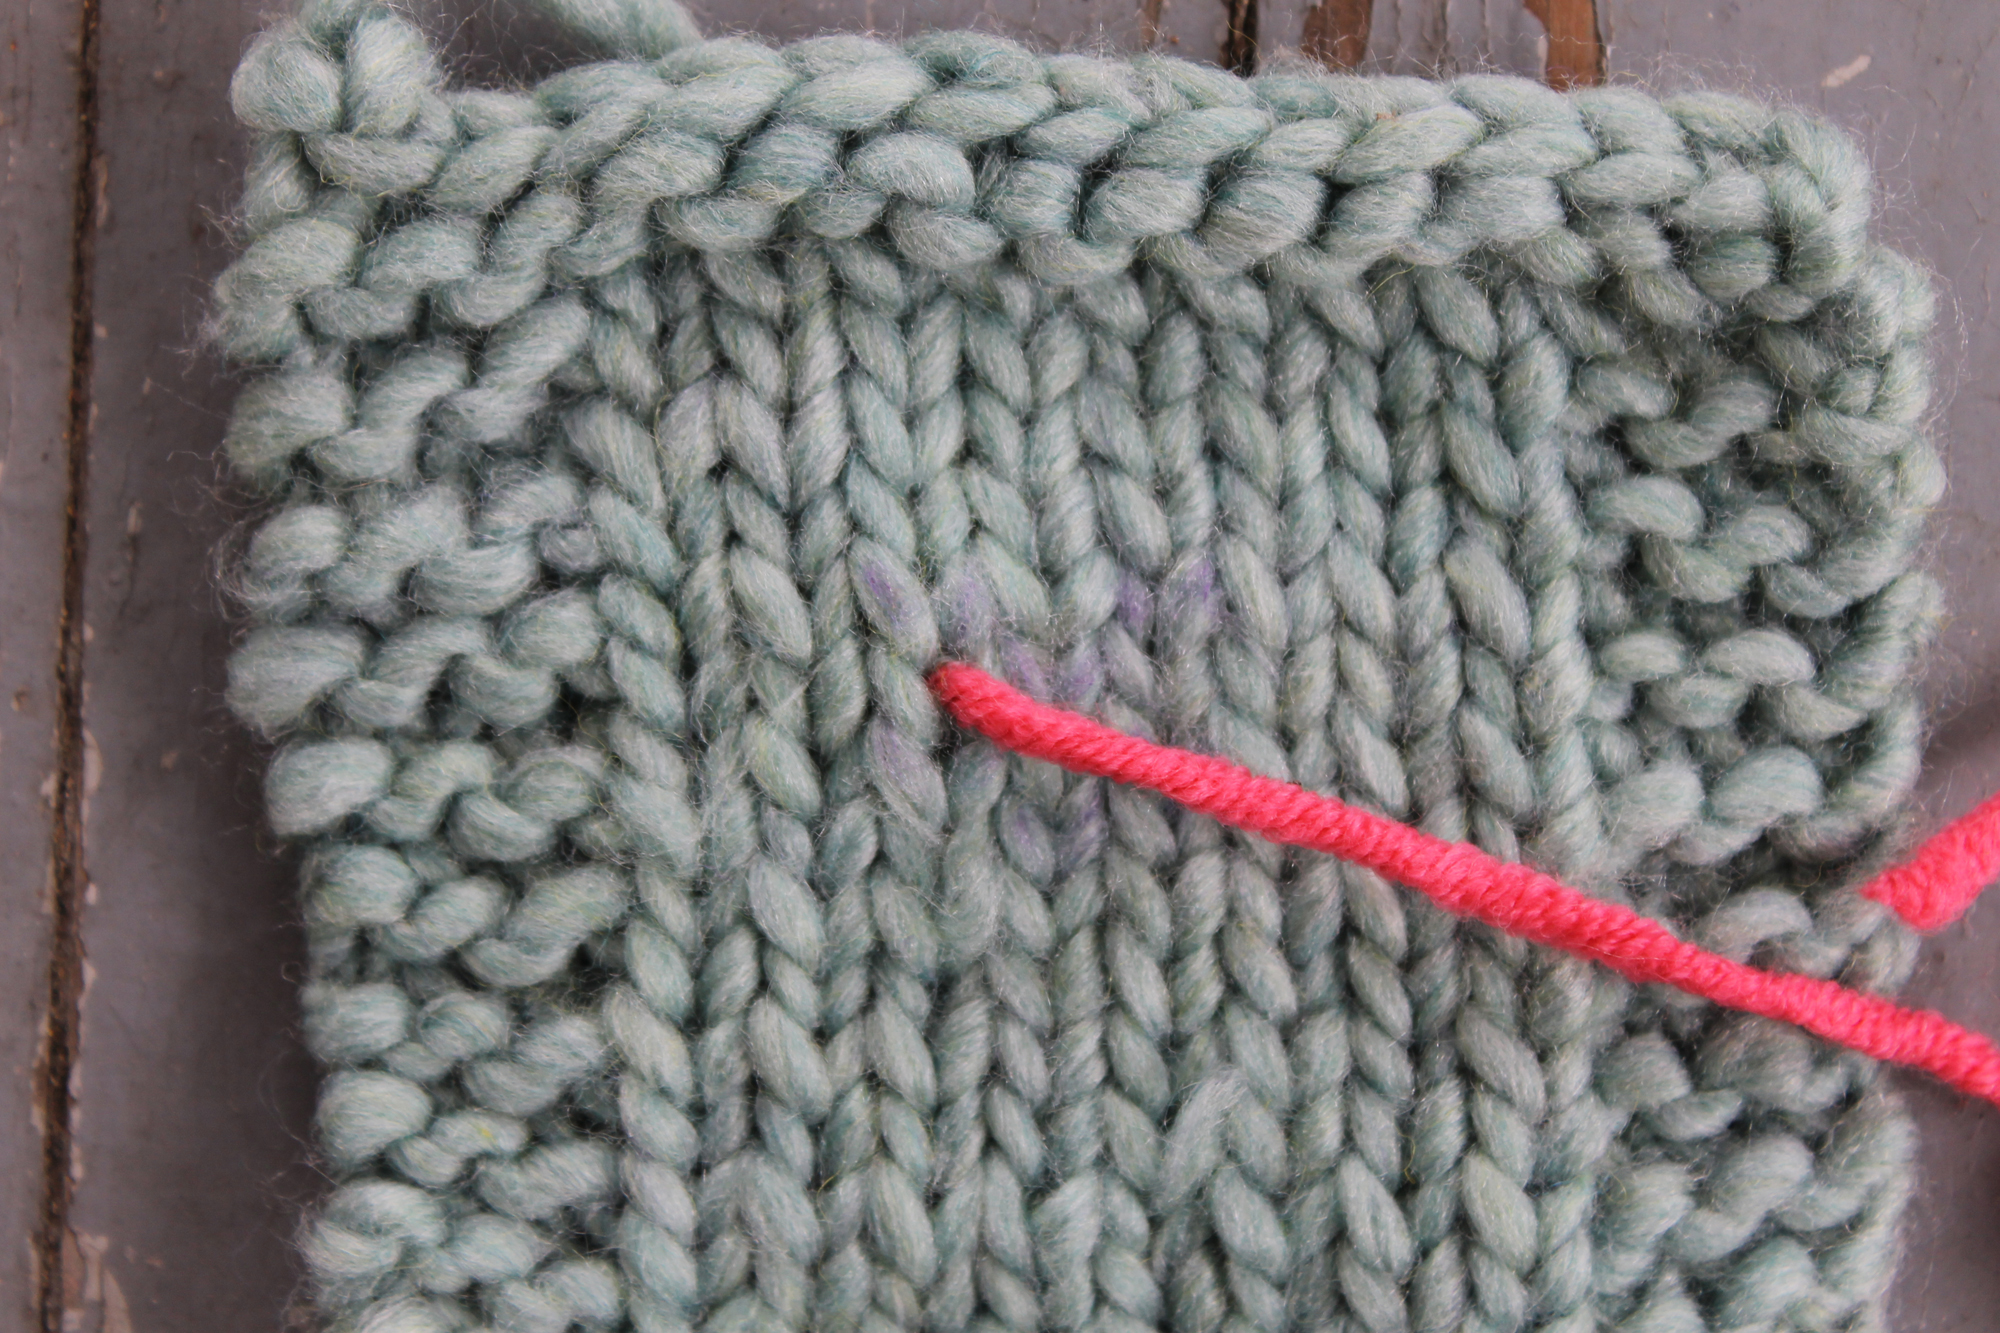 Inserting the tapestry needle at the bottom of the V for duplicate stitch